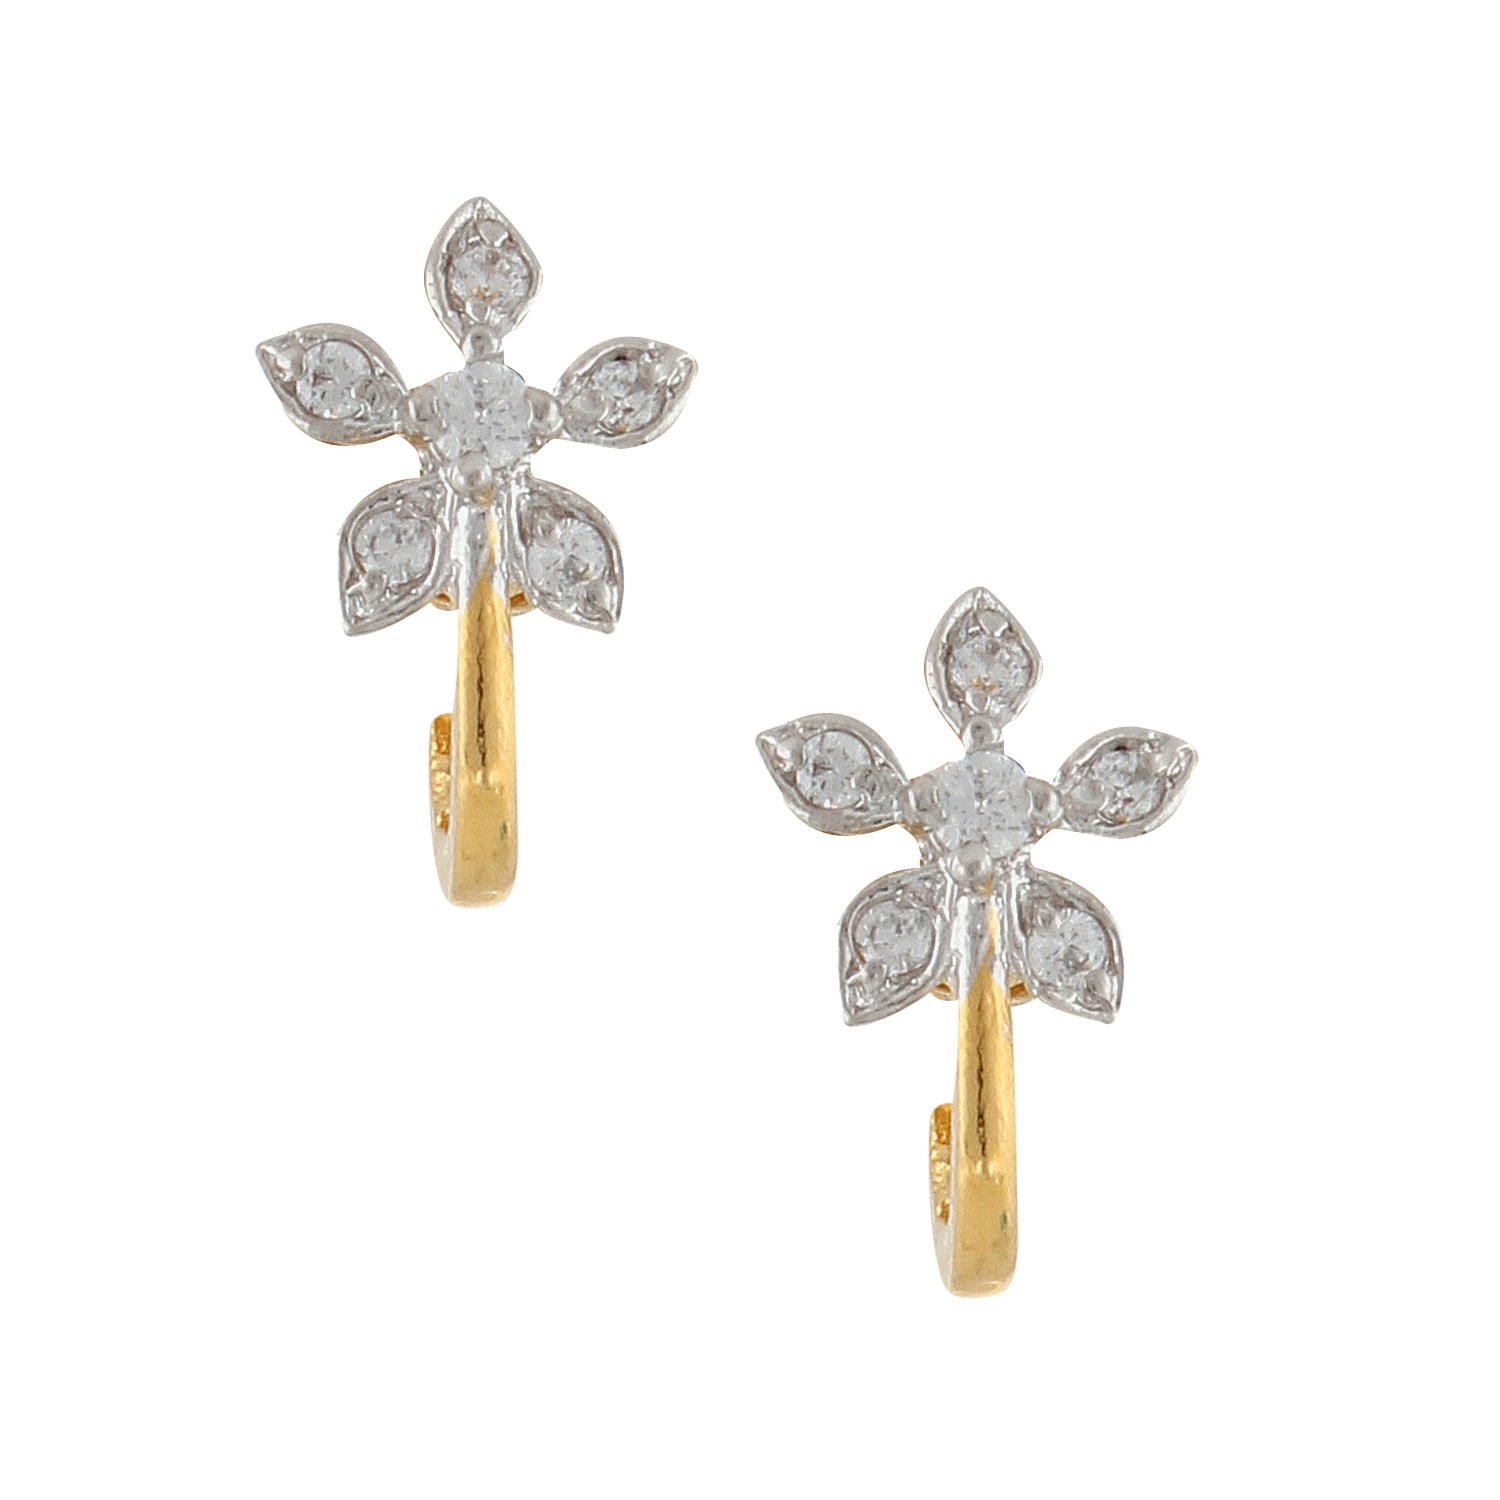 Efulgenz Stud Earrings 14 K Gold Plated Hypoallergenic Cubic Zirconia Floral Huggie Studs Pierced